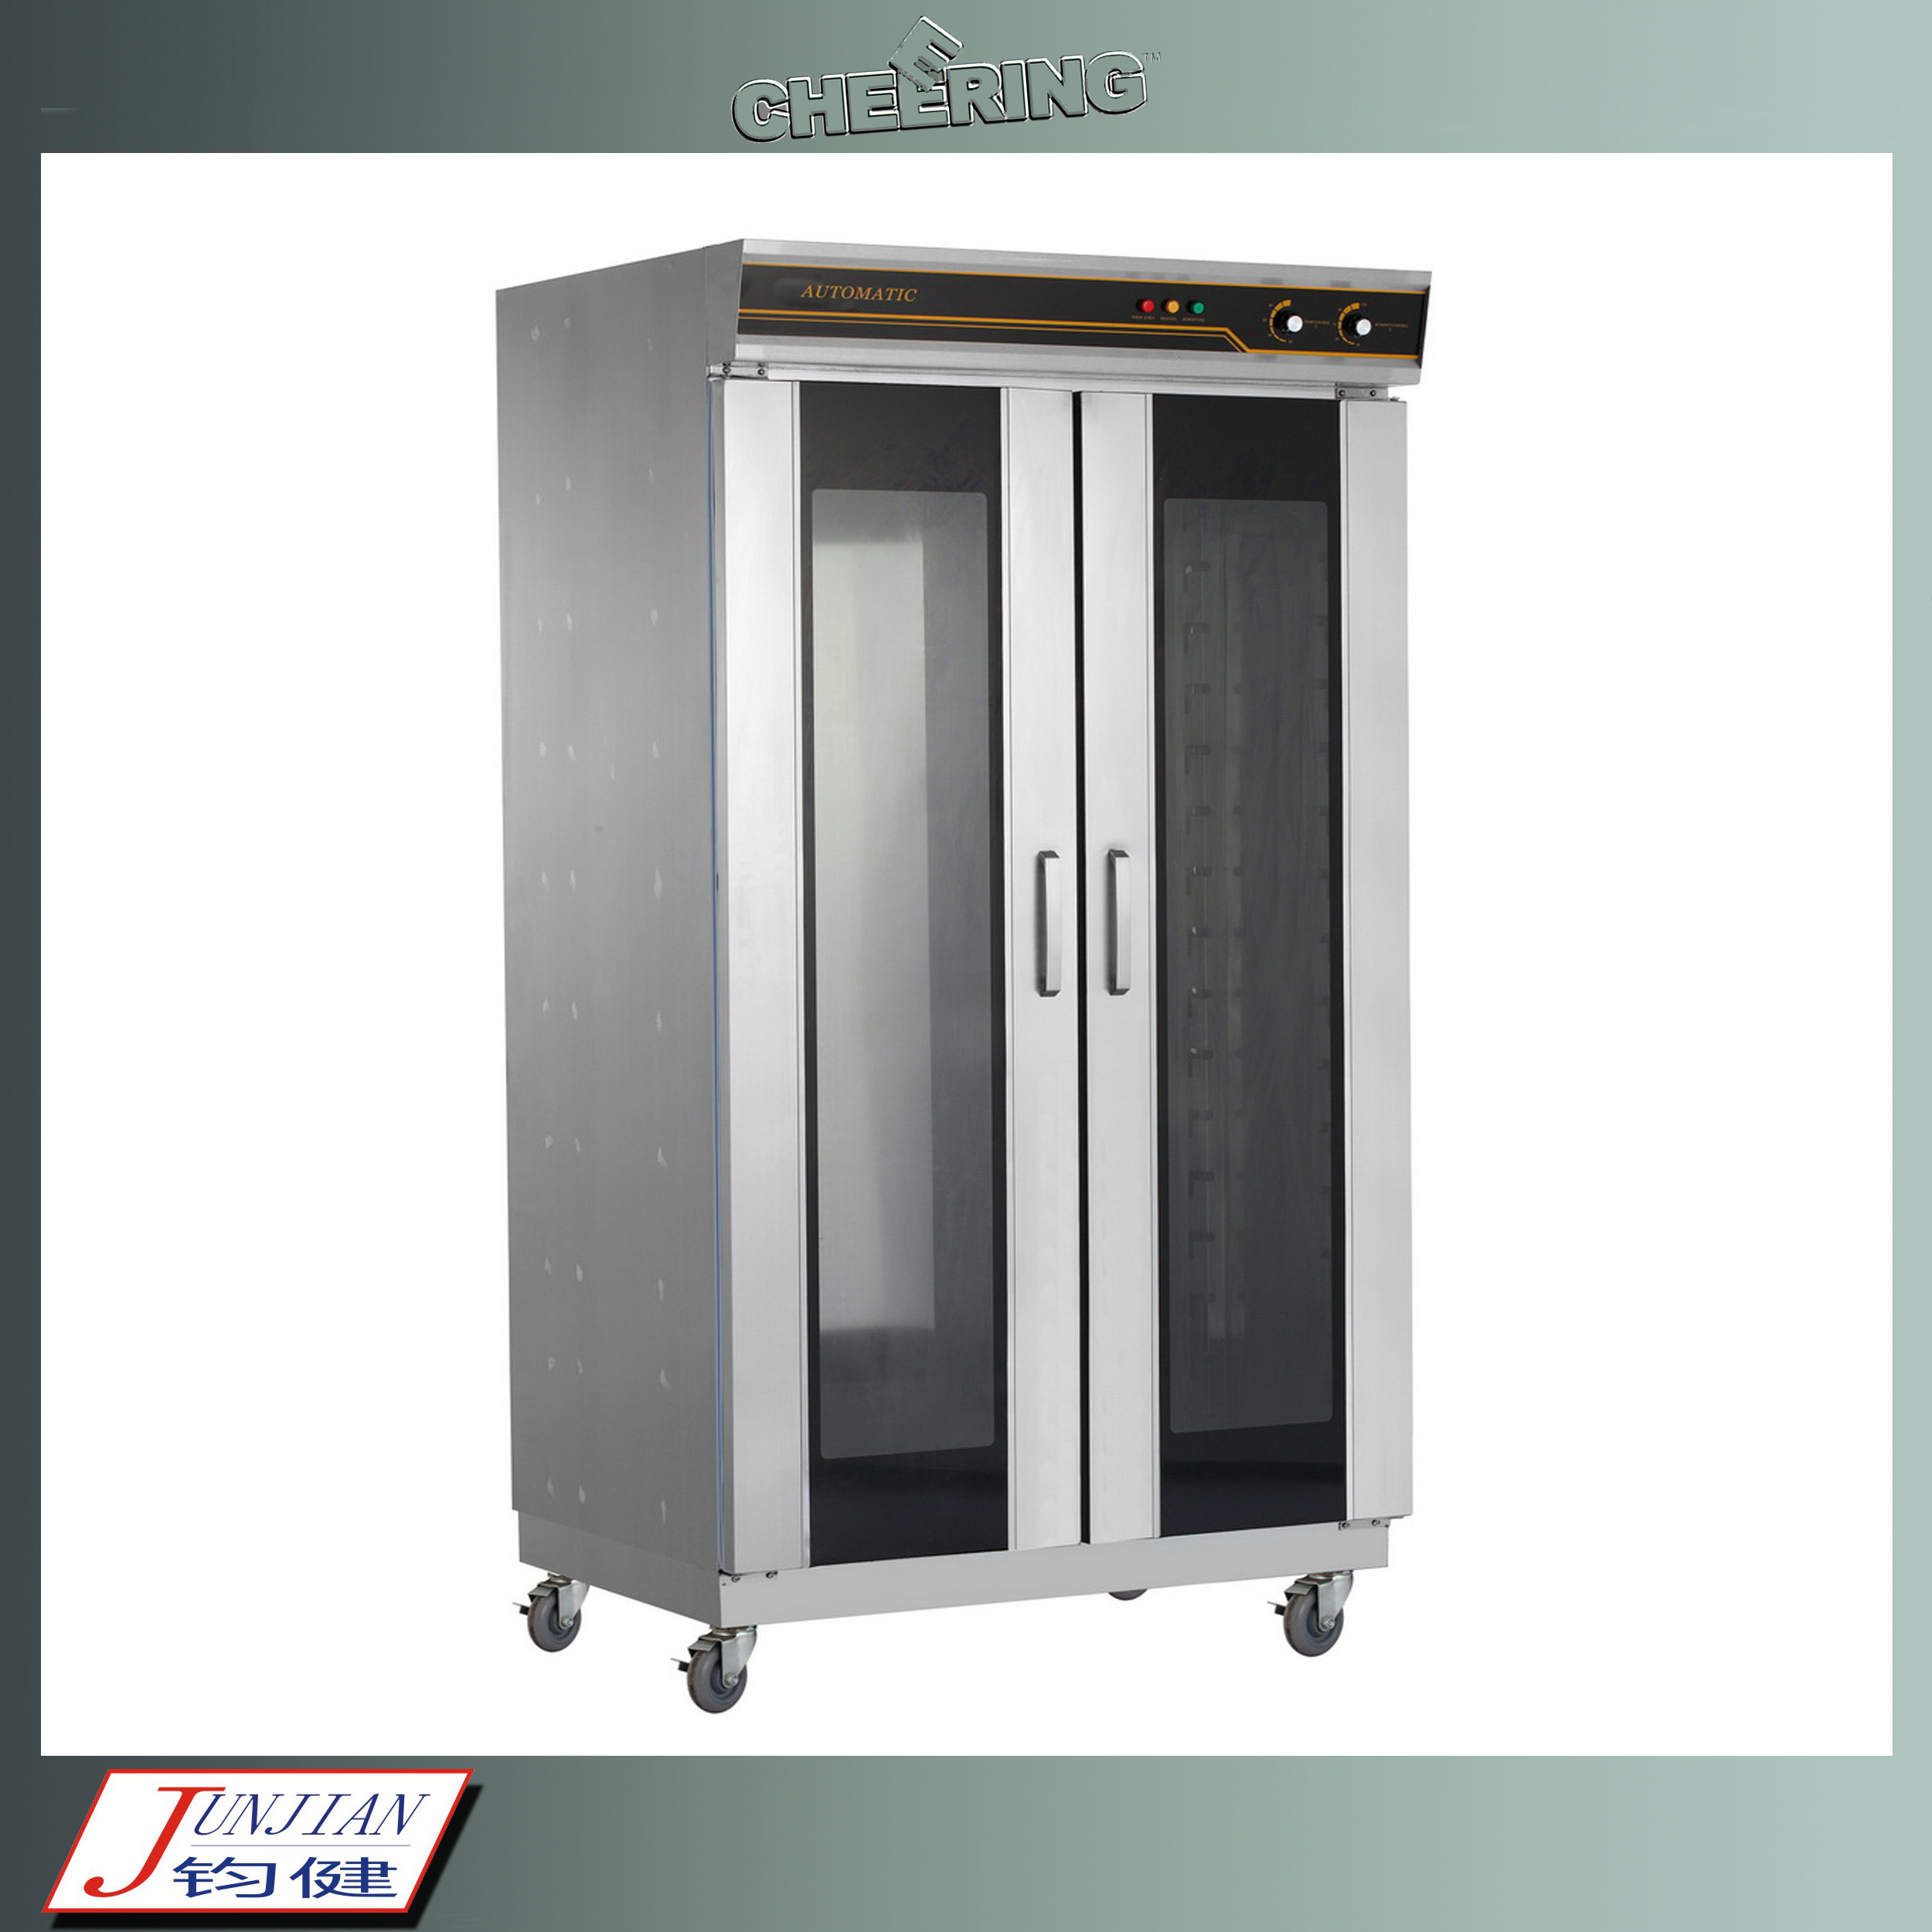 Commercial Electric Spray Food Steamer Proofer Prover for Bread Fermentation